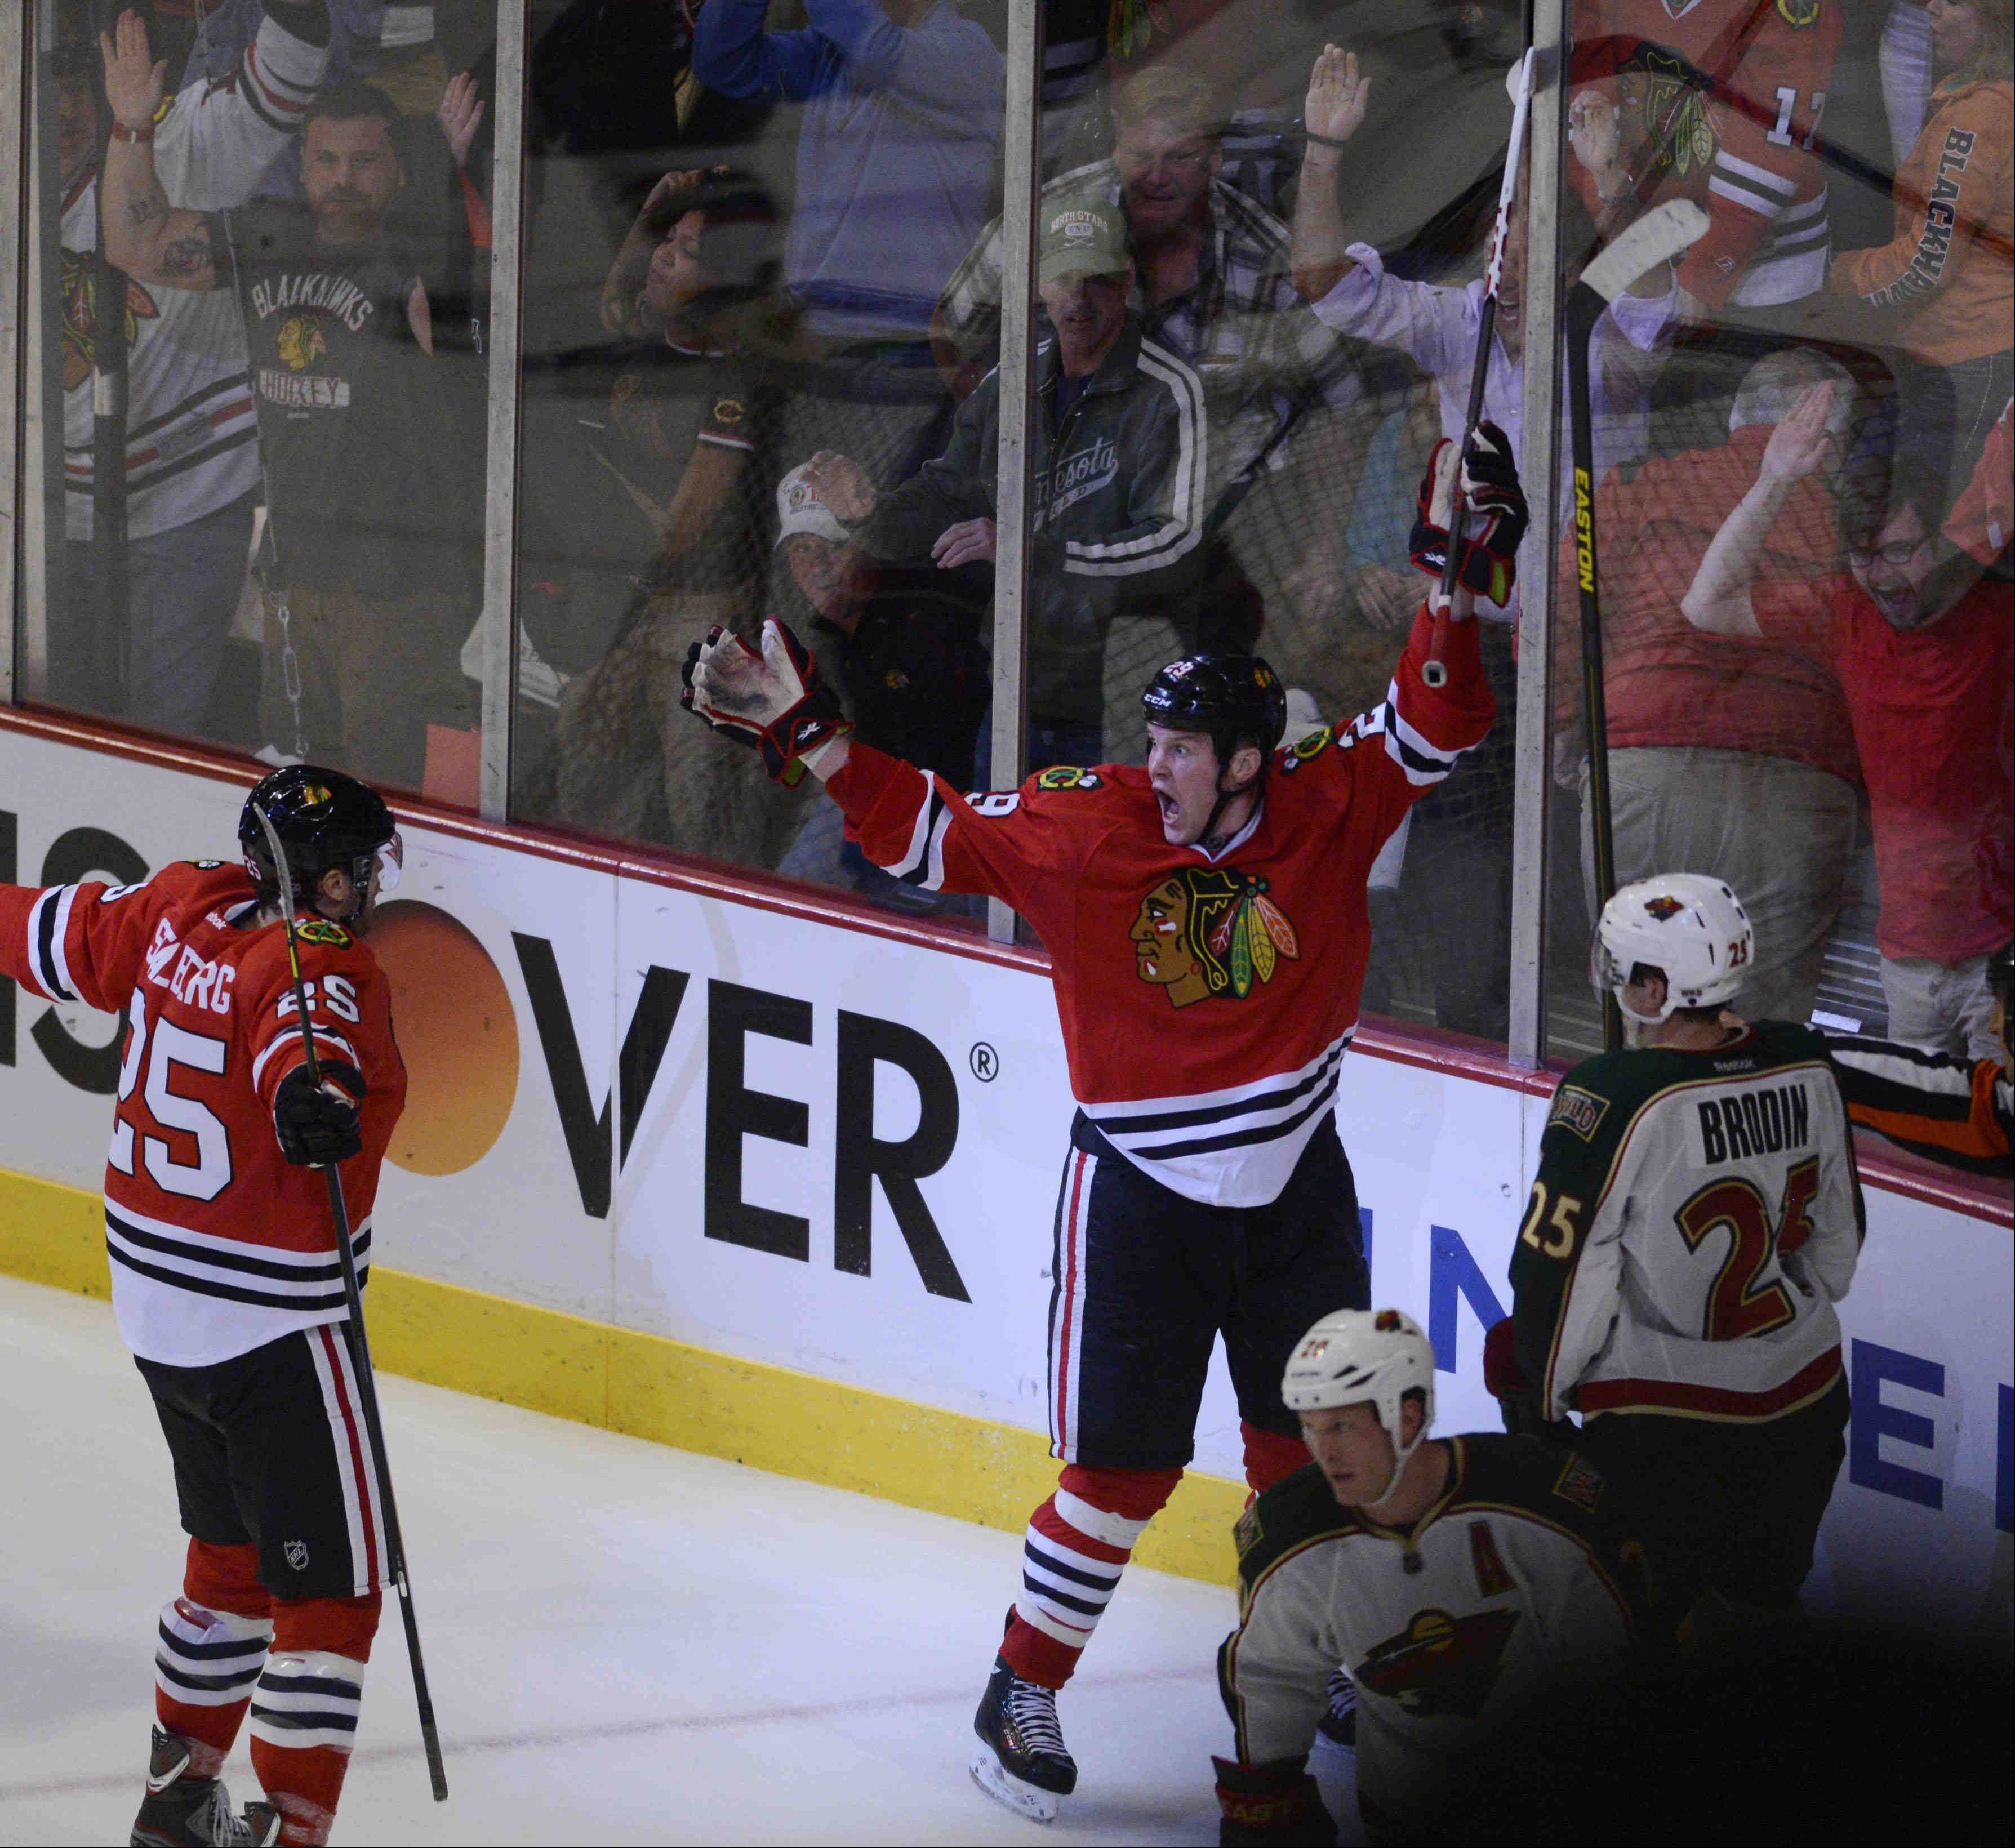 Bank shot and backhand win Game 1 for Hawks